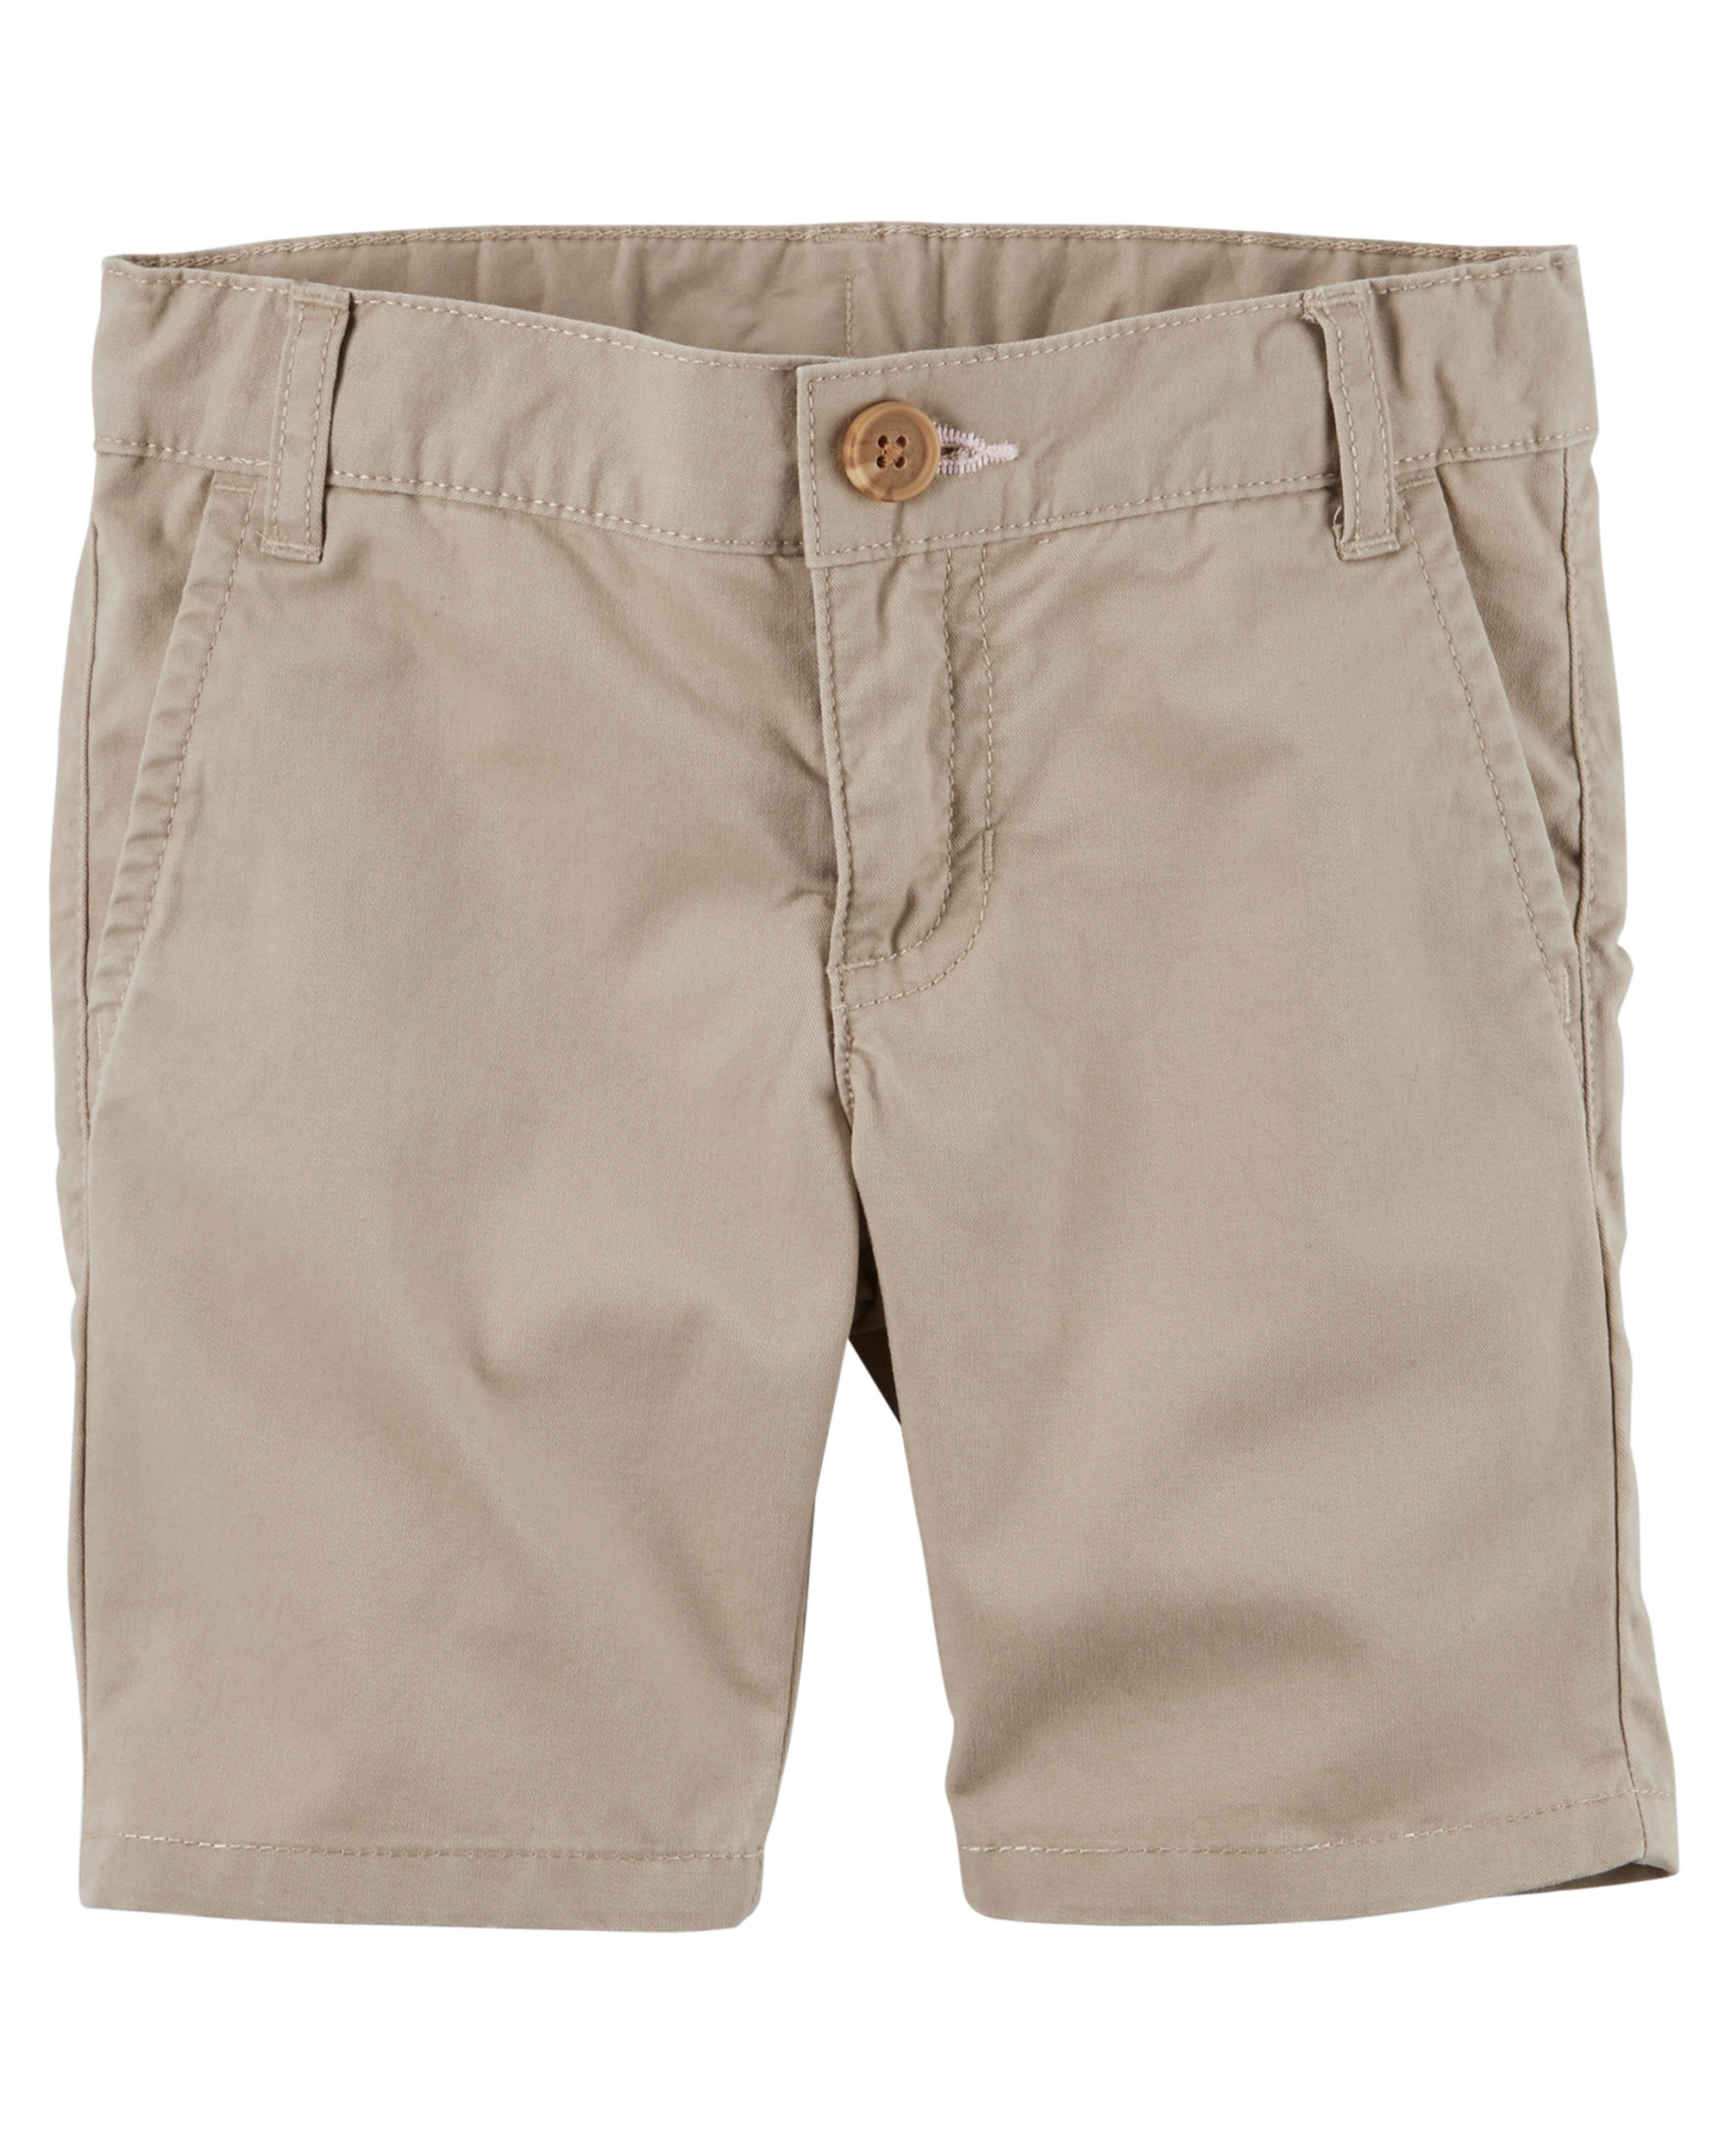 Carter's Girls' Khaki Twill Uniform Shorts - 3T